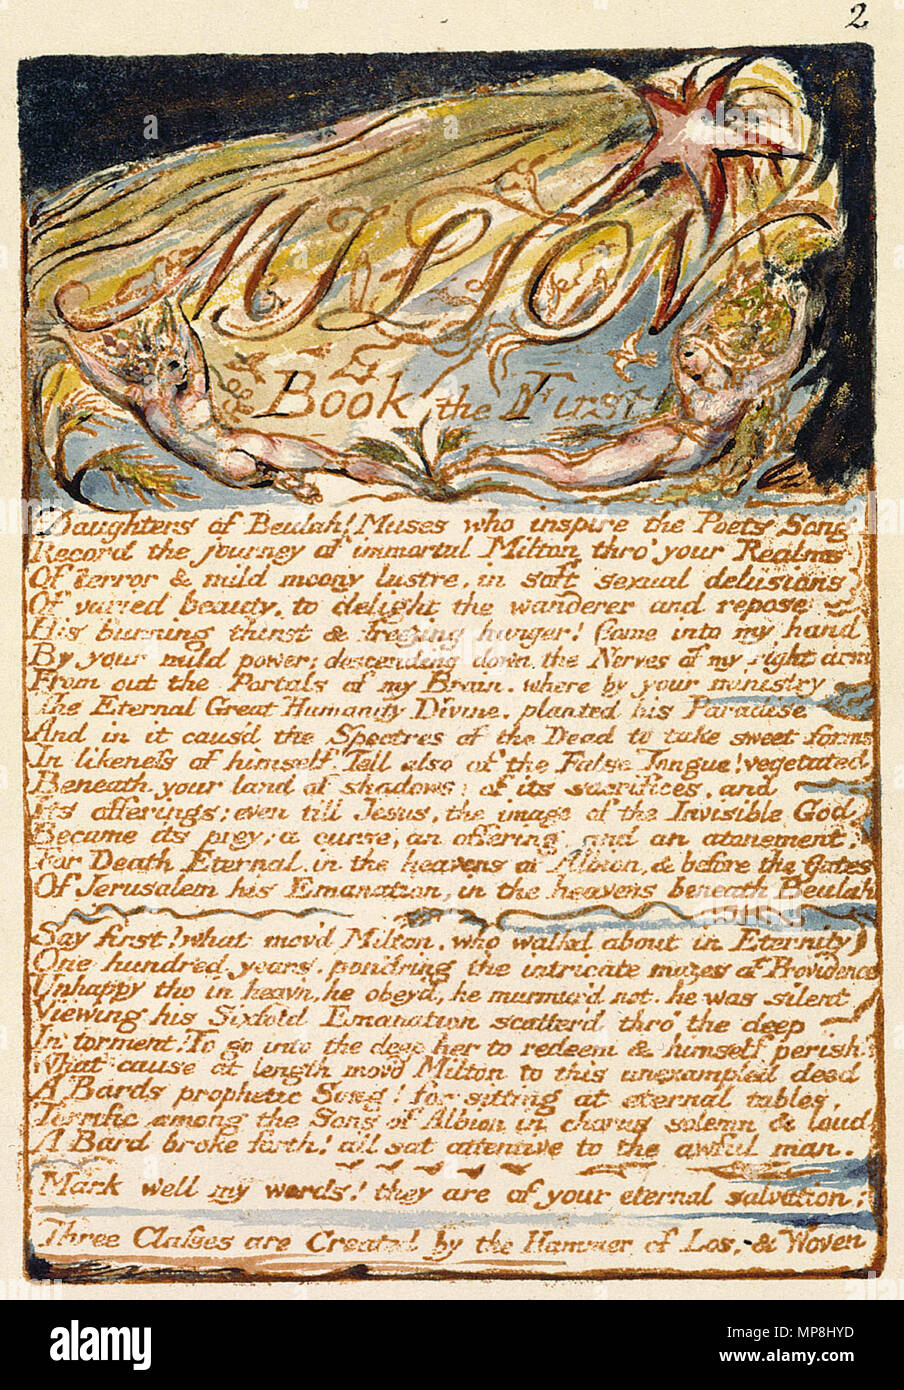 . English: Milton a Poem, copy D, object 2 Bentley 3, Erdman 2, Keynes 3) . 26 March 2007.   William Blake (1757–1827)   Alternative names W. Blake; Uil'iam Bleik  Description British painter, poet, writer, theologian, collector and engraver  Date of birth/death 28 November 1757 12 August 1827  Location of birth/death Broadwick Street Charing Cross  Work location London  Authority control  : Q41513 VIAF:54144439 ISNI:0000 0001 2096 135X ULAN:500012489 LCCN:n78095331 NLA:35019221 WorldCat     This is a faithful photographic reproduction of a two-dimensional, public domain work of art. Stock Photo